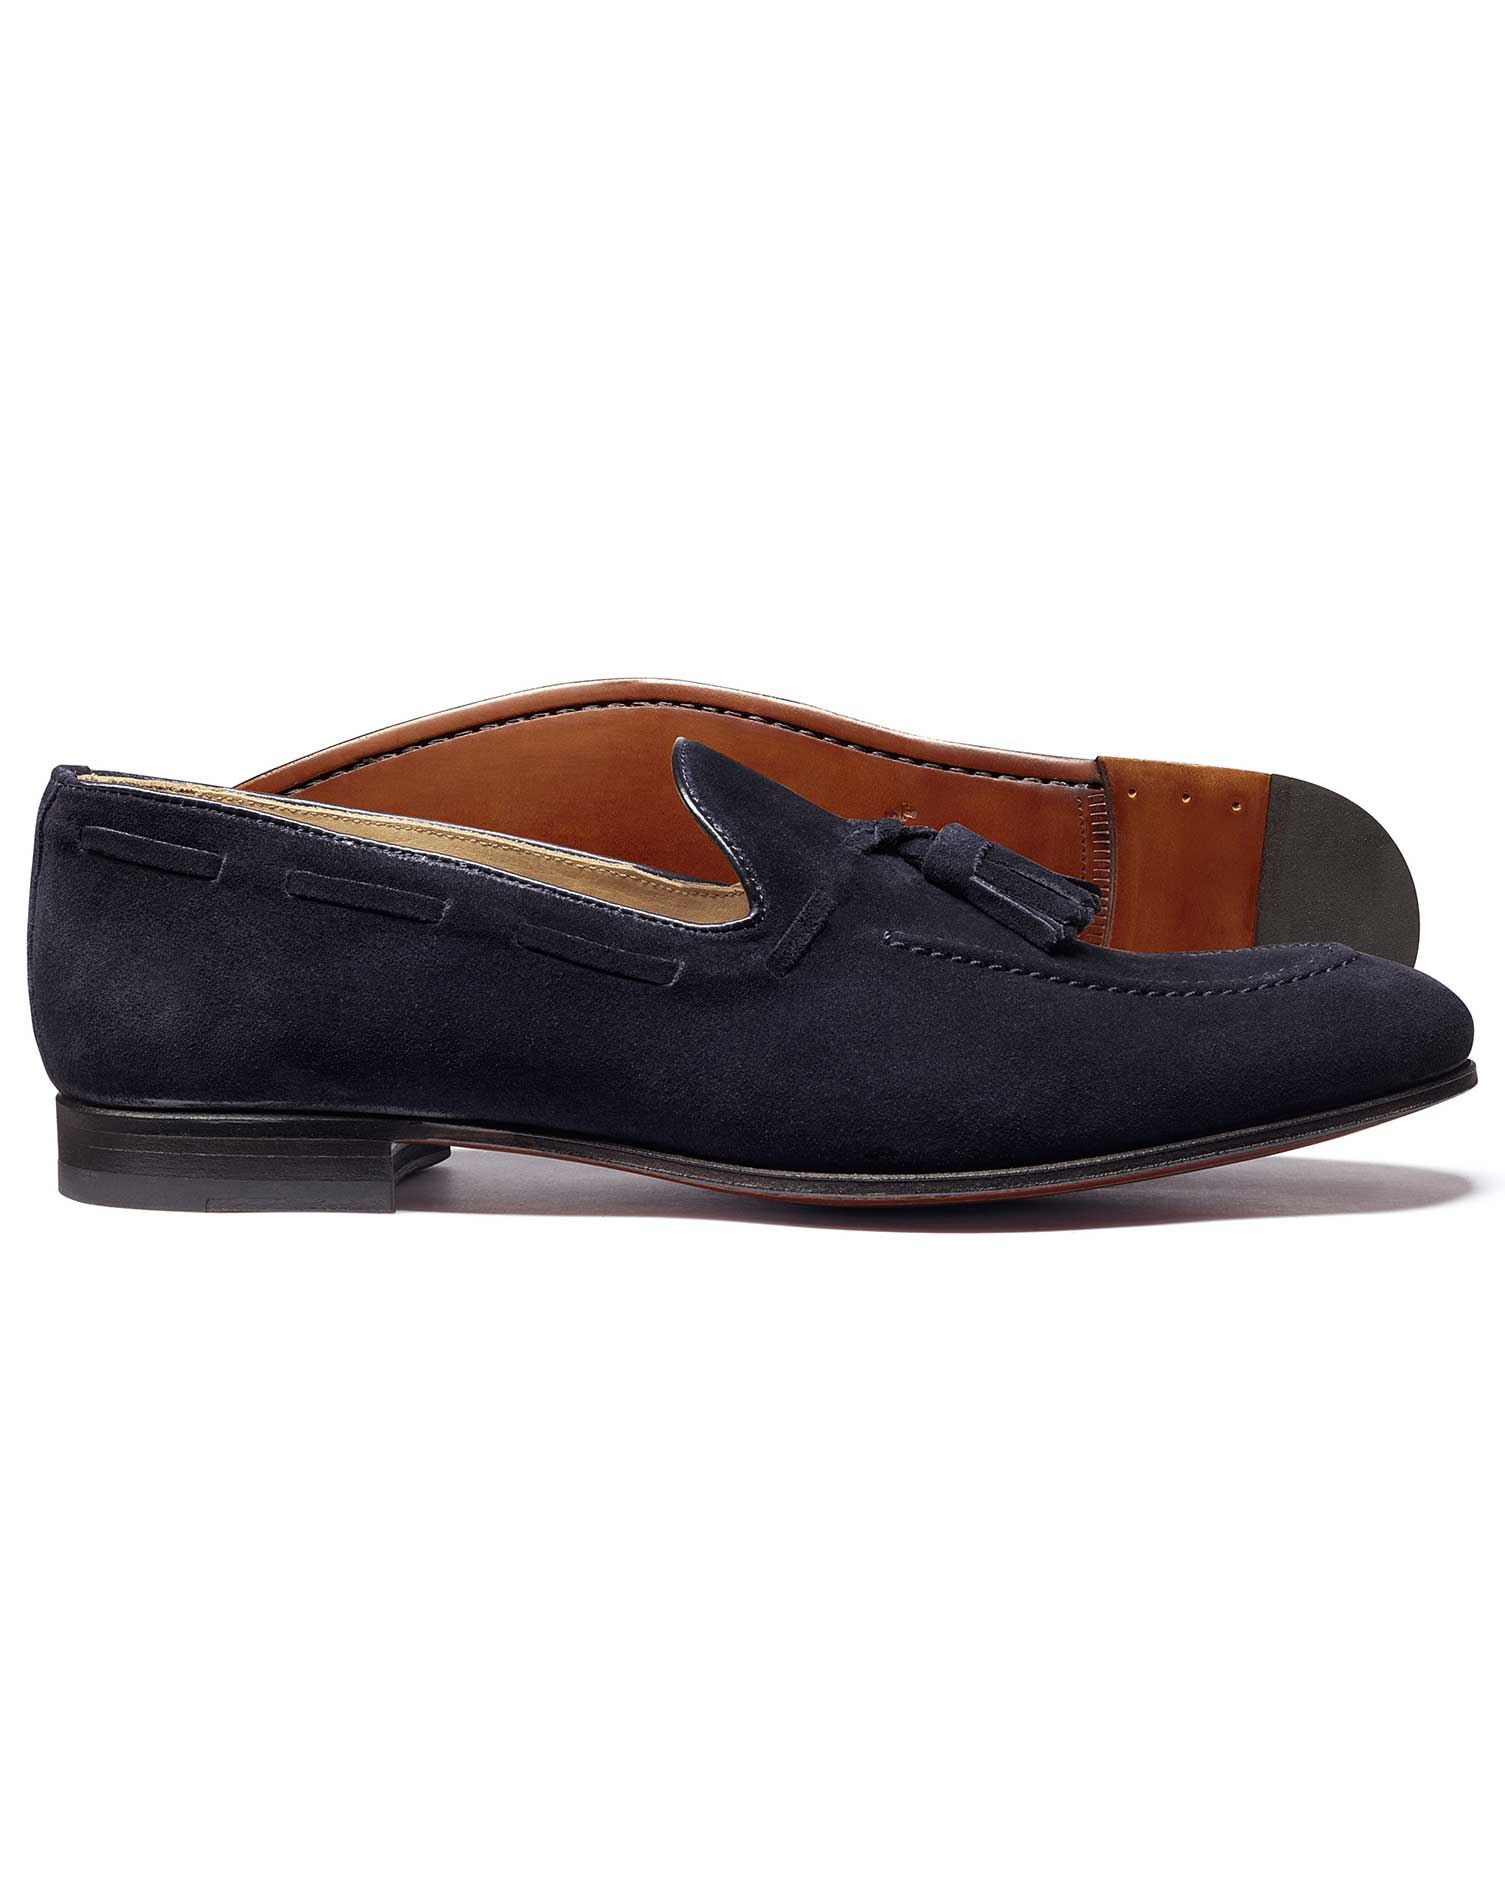 Navy Suede Tassel Loafer Size 9.5 R by Charles Tyrwhitt